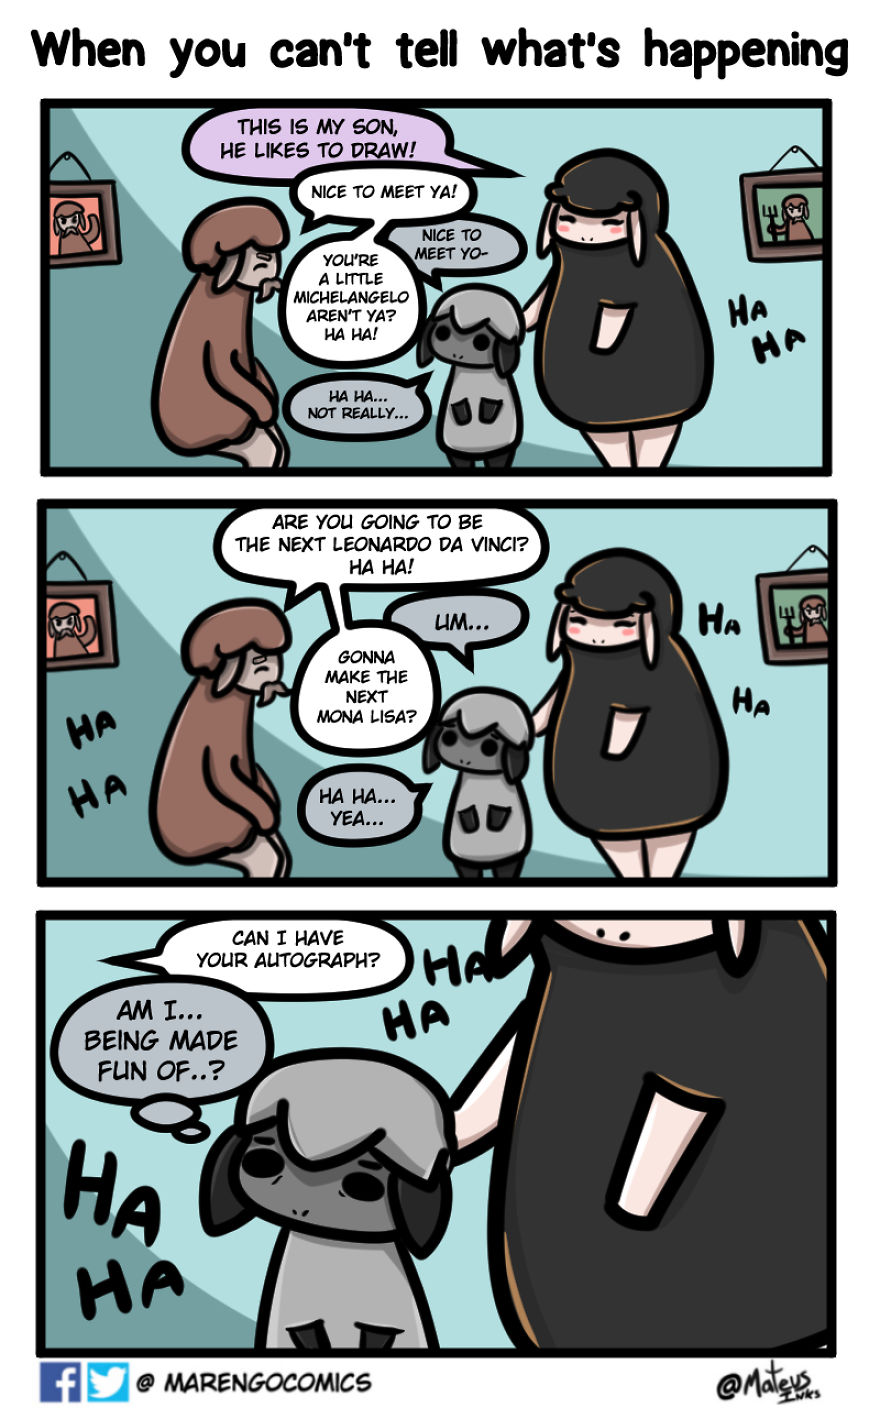 I Started These Comics To Focus On My Shyness, Here Are 25 Comics About A Timid Sheep Fighting To Overcome Insecurities